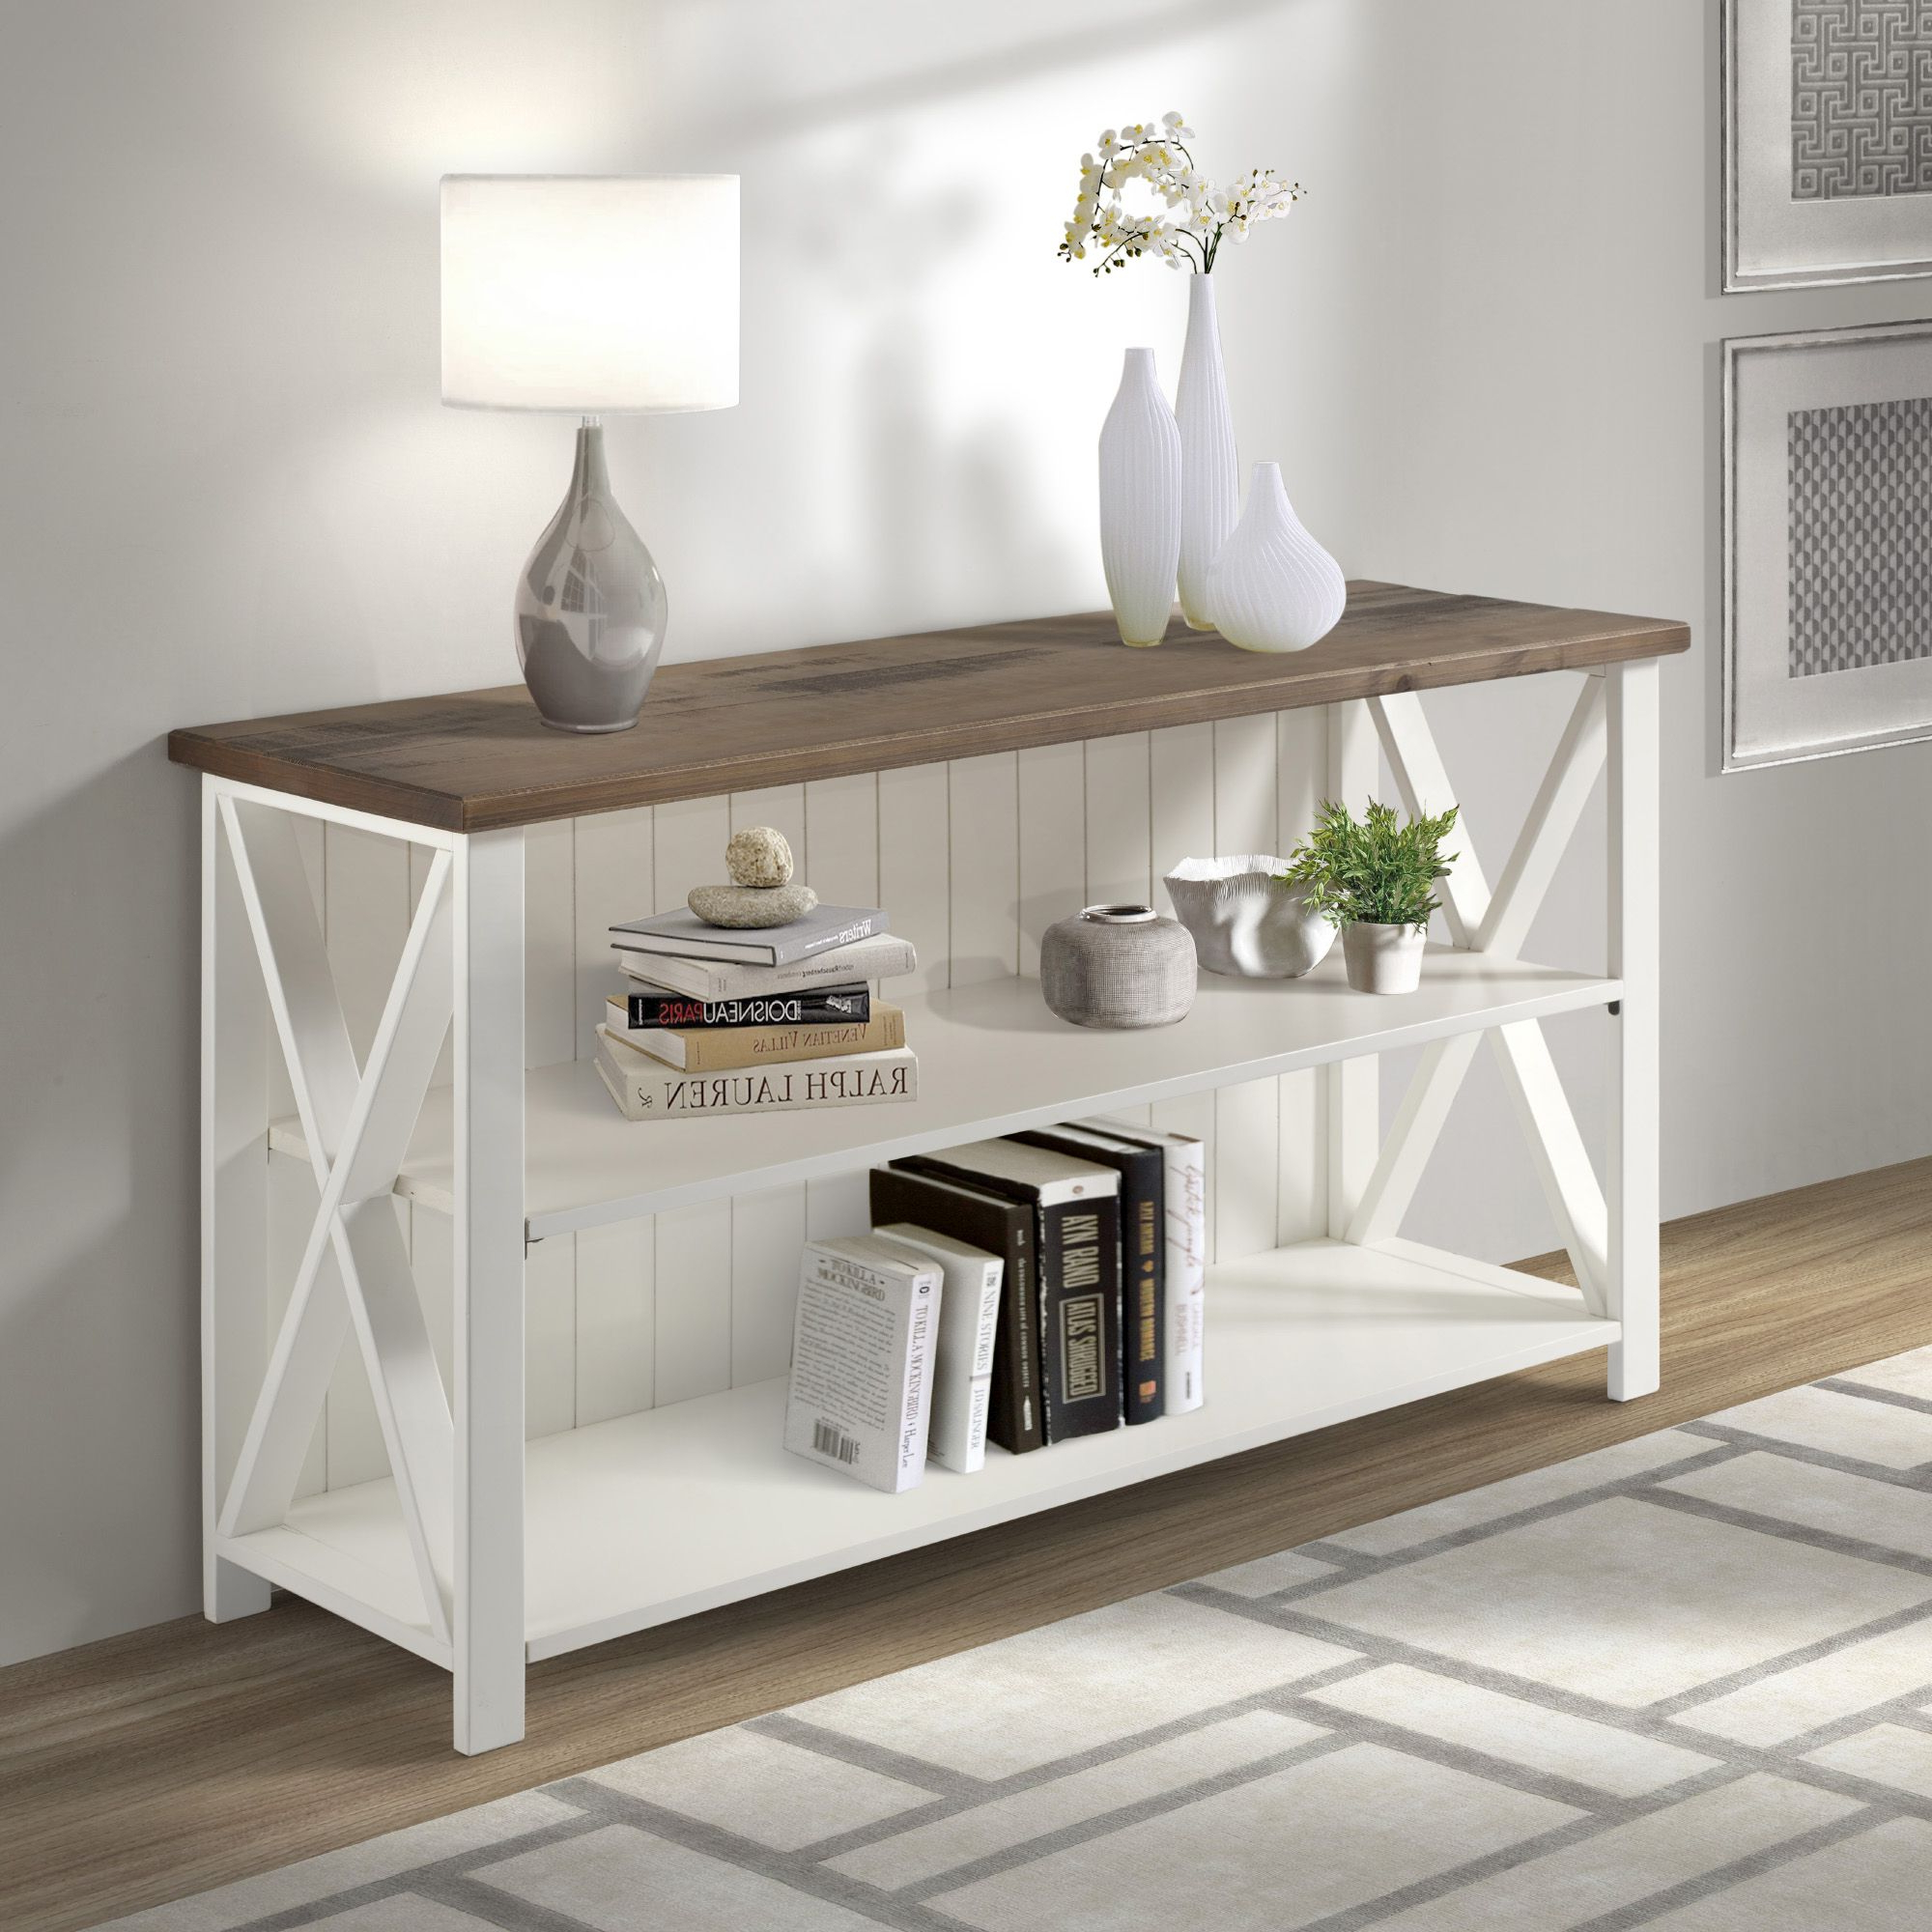 Woven Paths Solid Wood Storage Console Table, White Intended For Woven Paths Farmhouse Barn Door Tv Stands In Multiple Finishes (View 7 of 20)